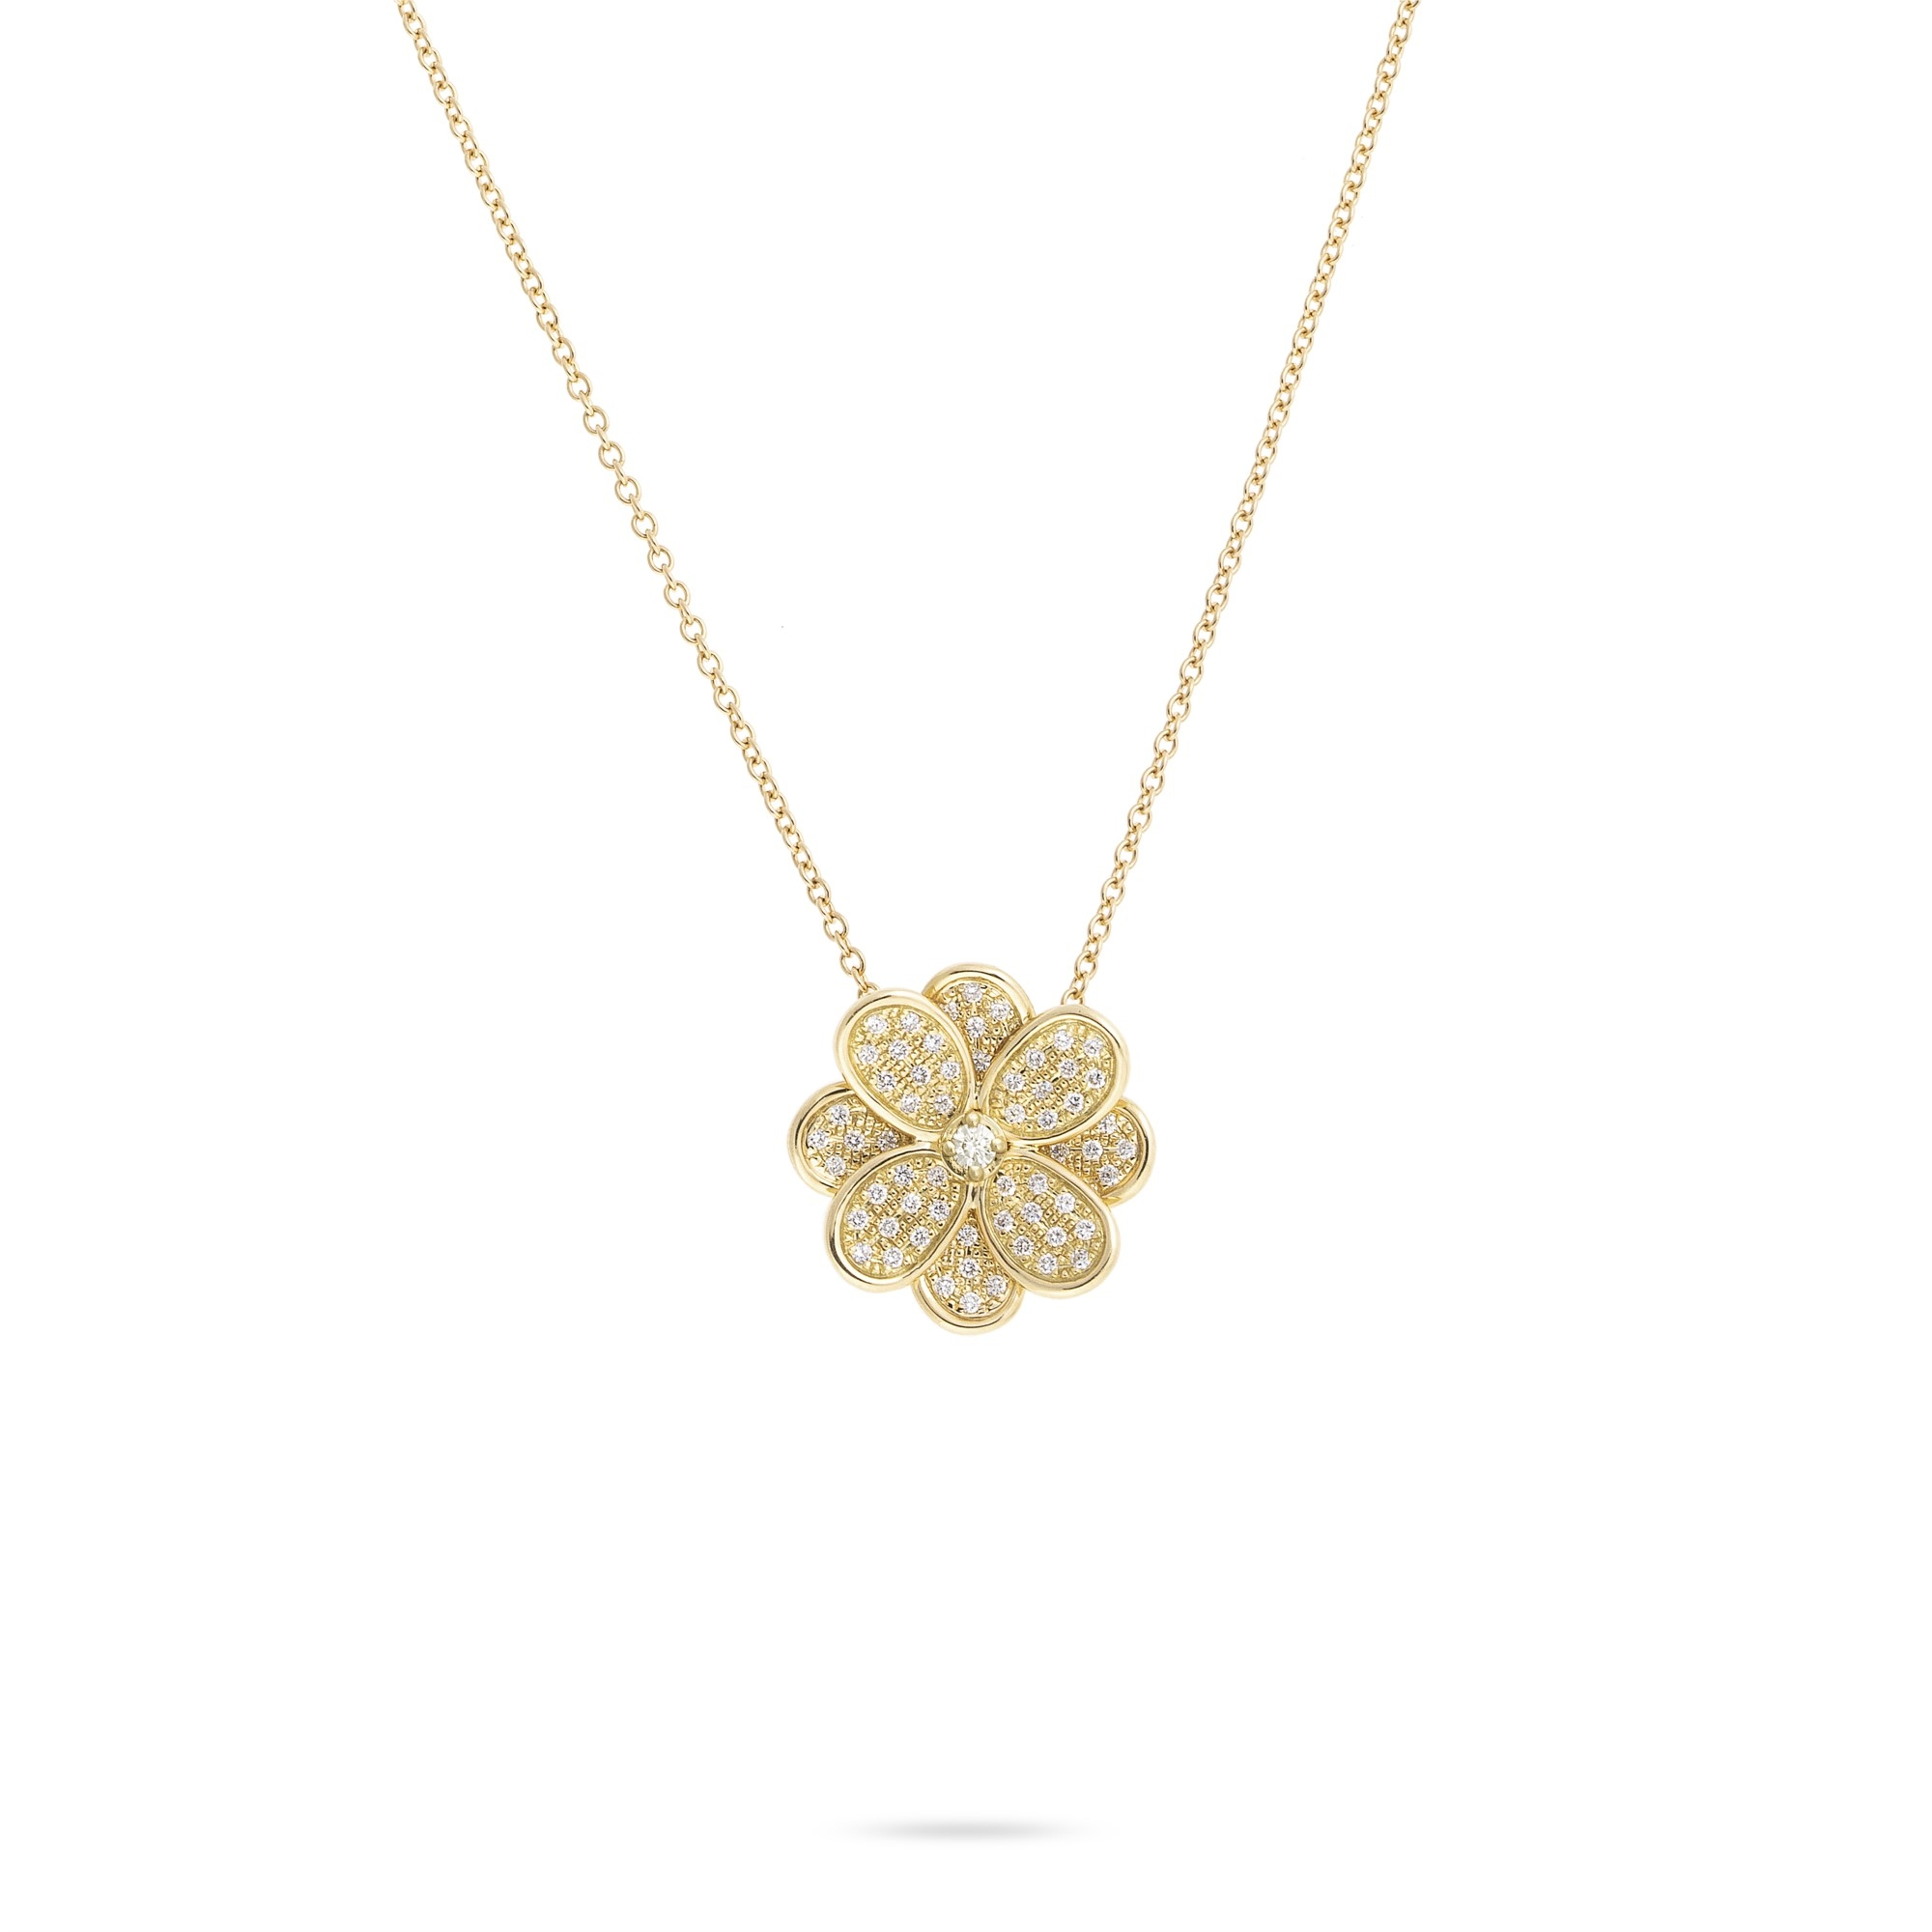 Marco Bicego 18K Yellow Gold .62cts  Diamonds Gold Necklace with Stones CB2434 B6 Y